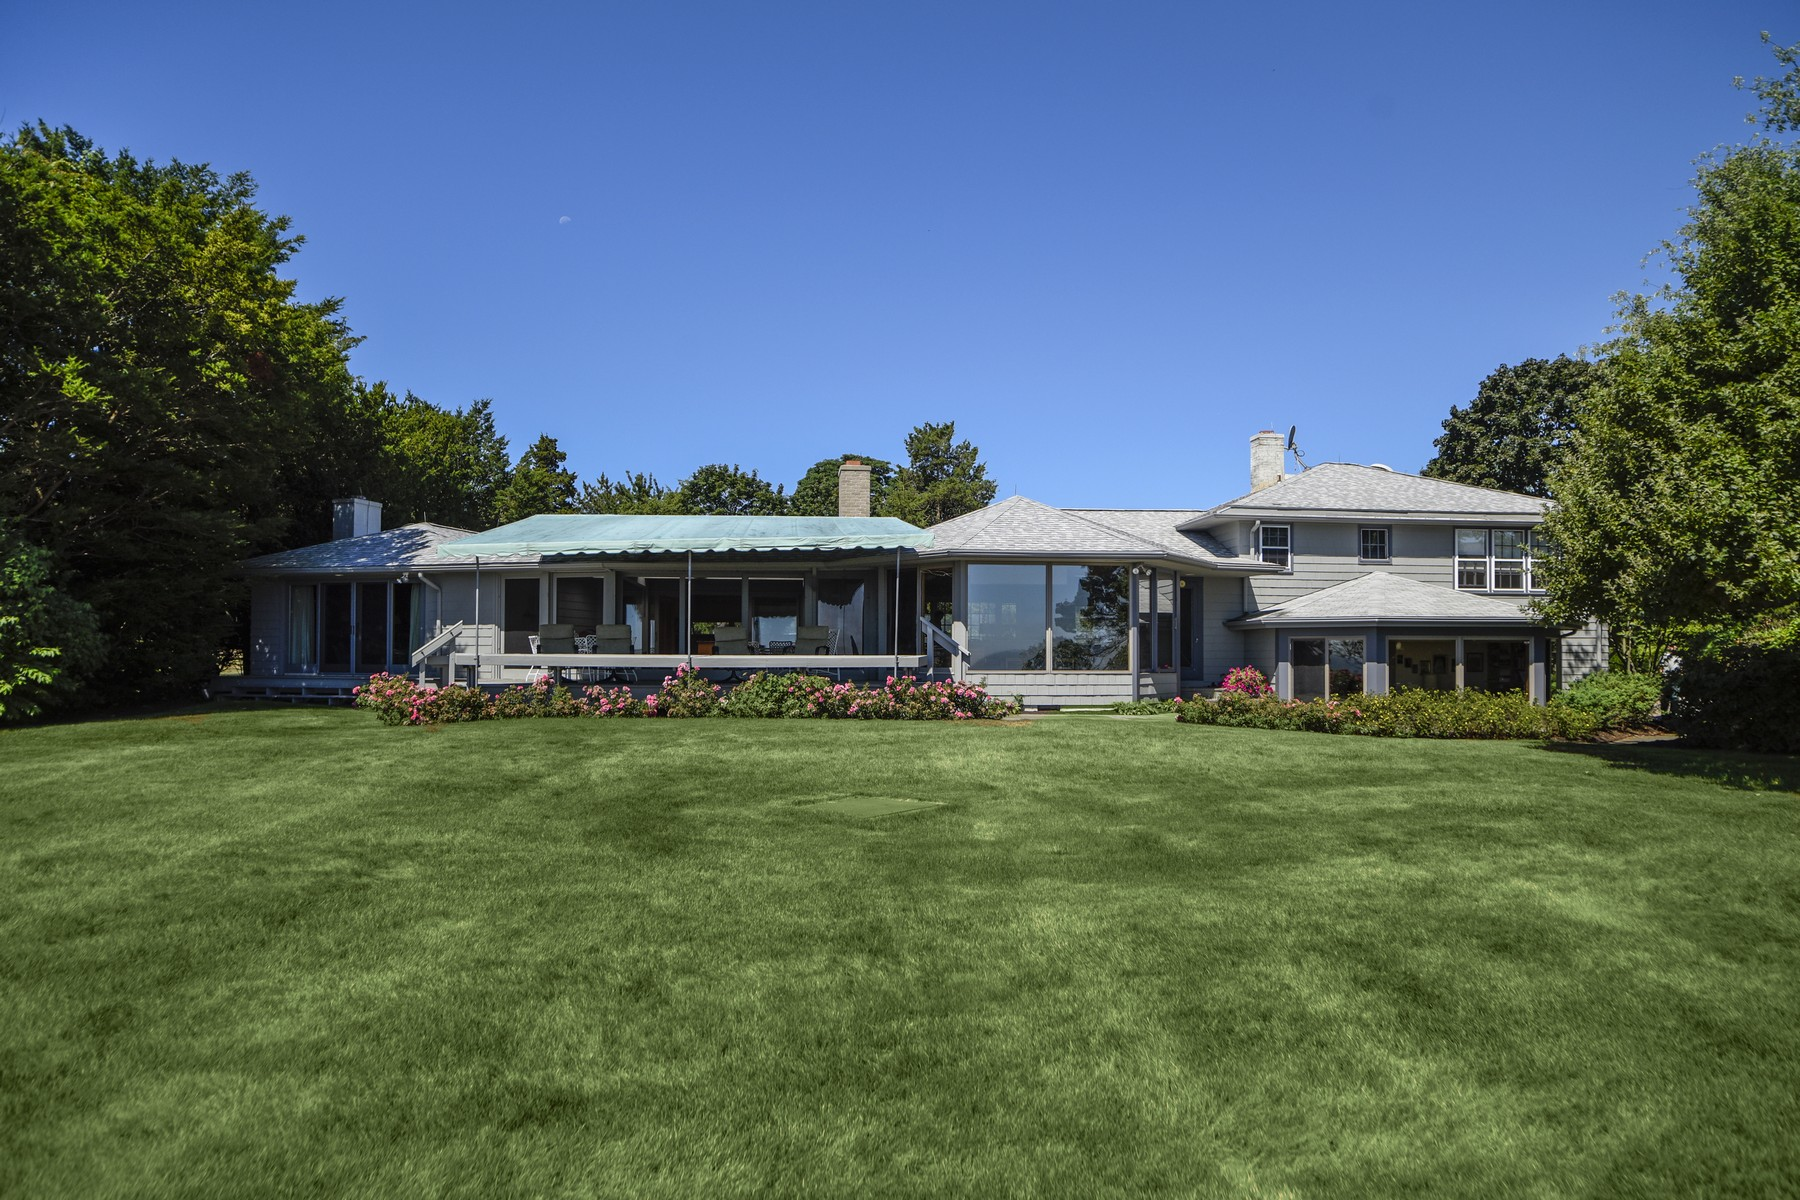 Casa Unifamiliar por un Venta en Mid Century Modern Style Waterfront Home 11 West Ln East Lyme, Connecticut, 06357 Estados Unidos